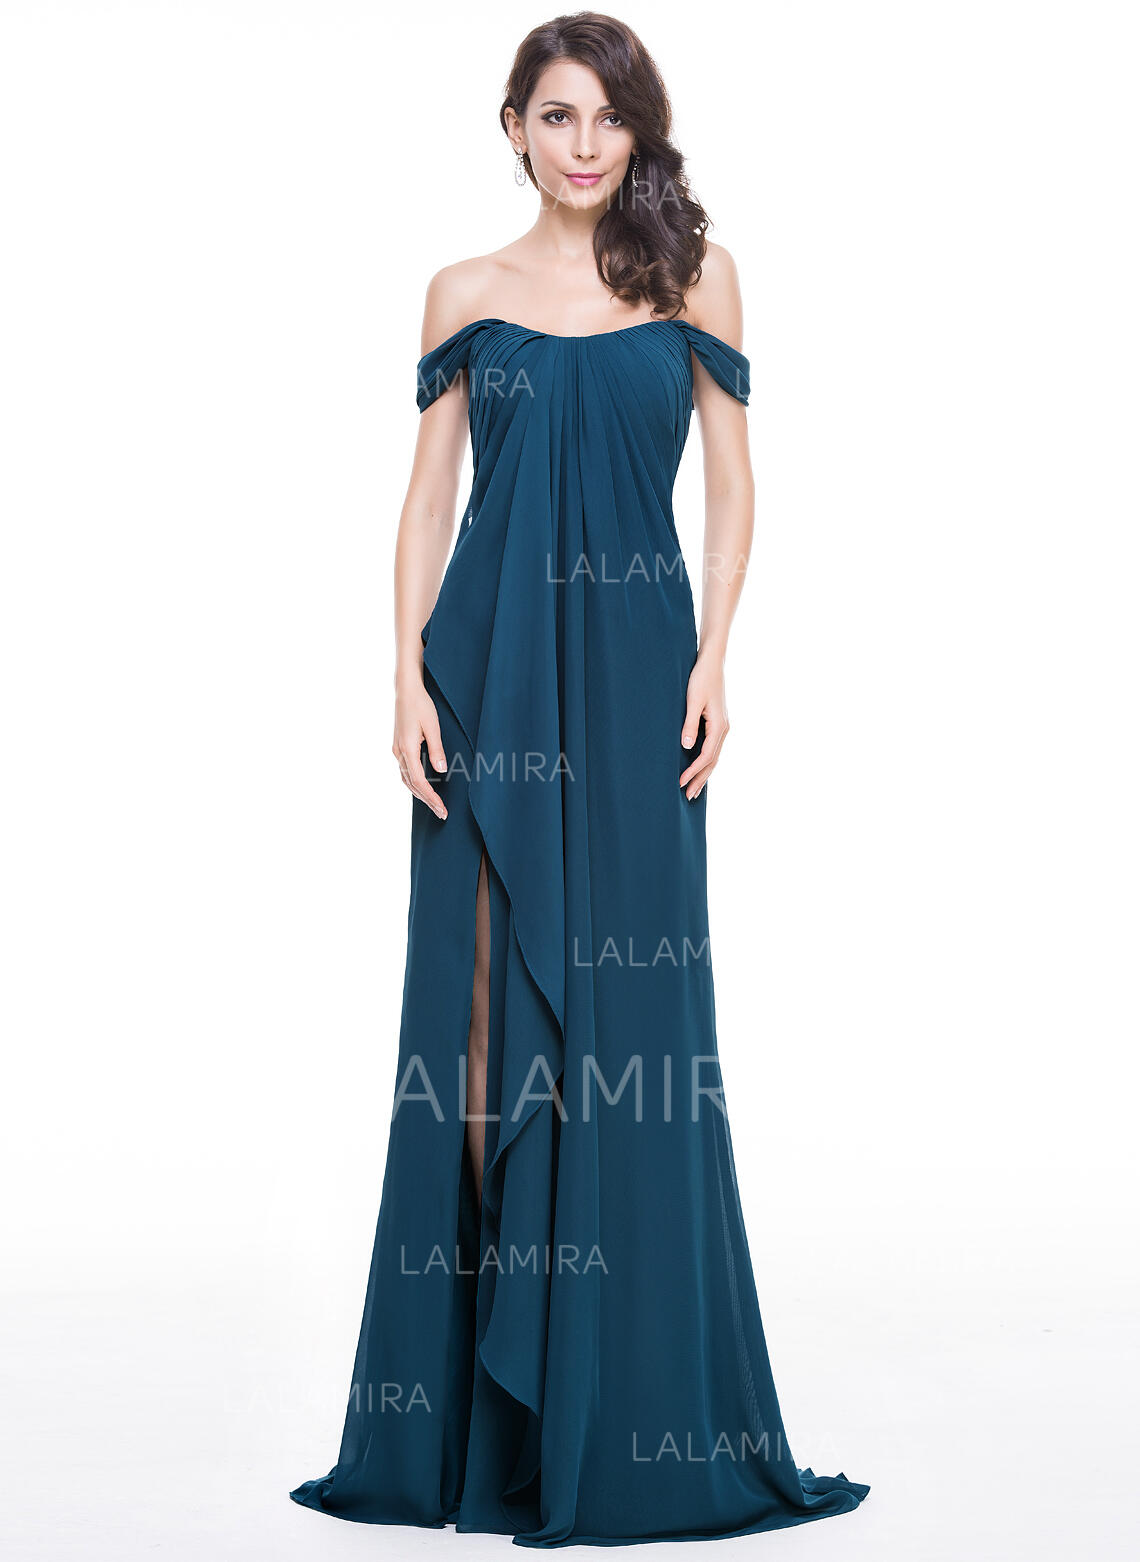 7752dc8cbae A-Line Princess Prom Dresses Gorgeous Sweep Train Off-the-Shoulder  Sleeveless. Loading zoom